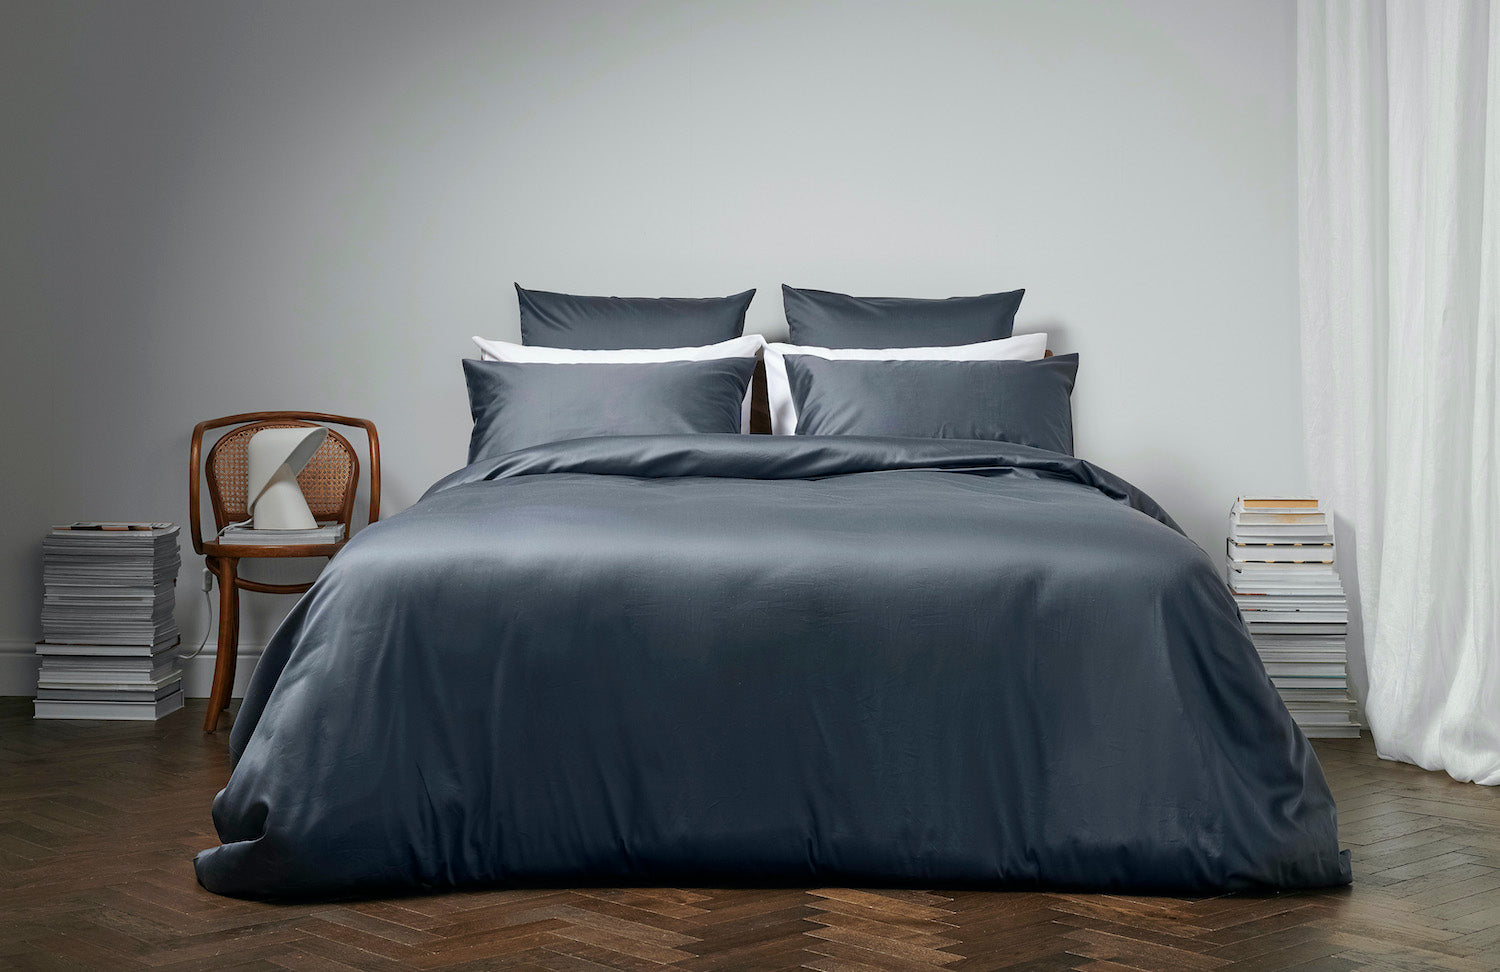 Luxury 100% Linen Bedding - Bedfolk